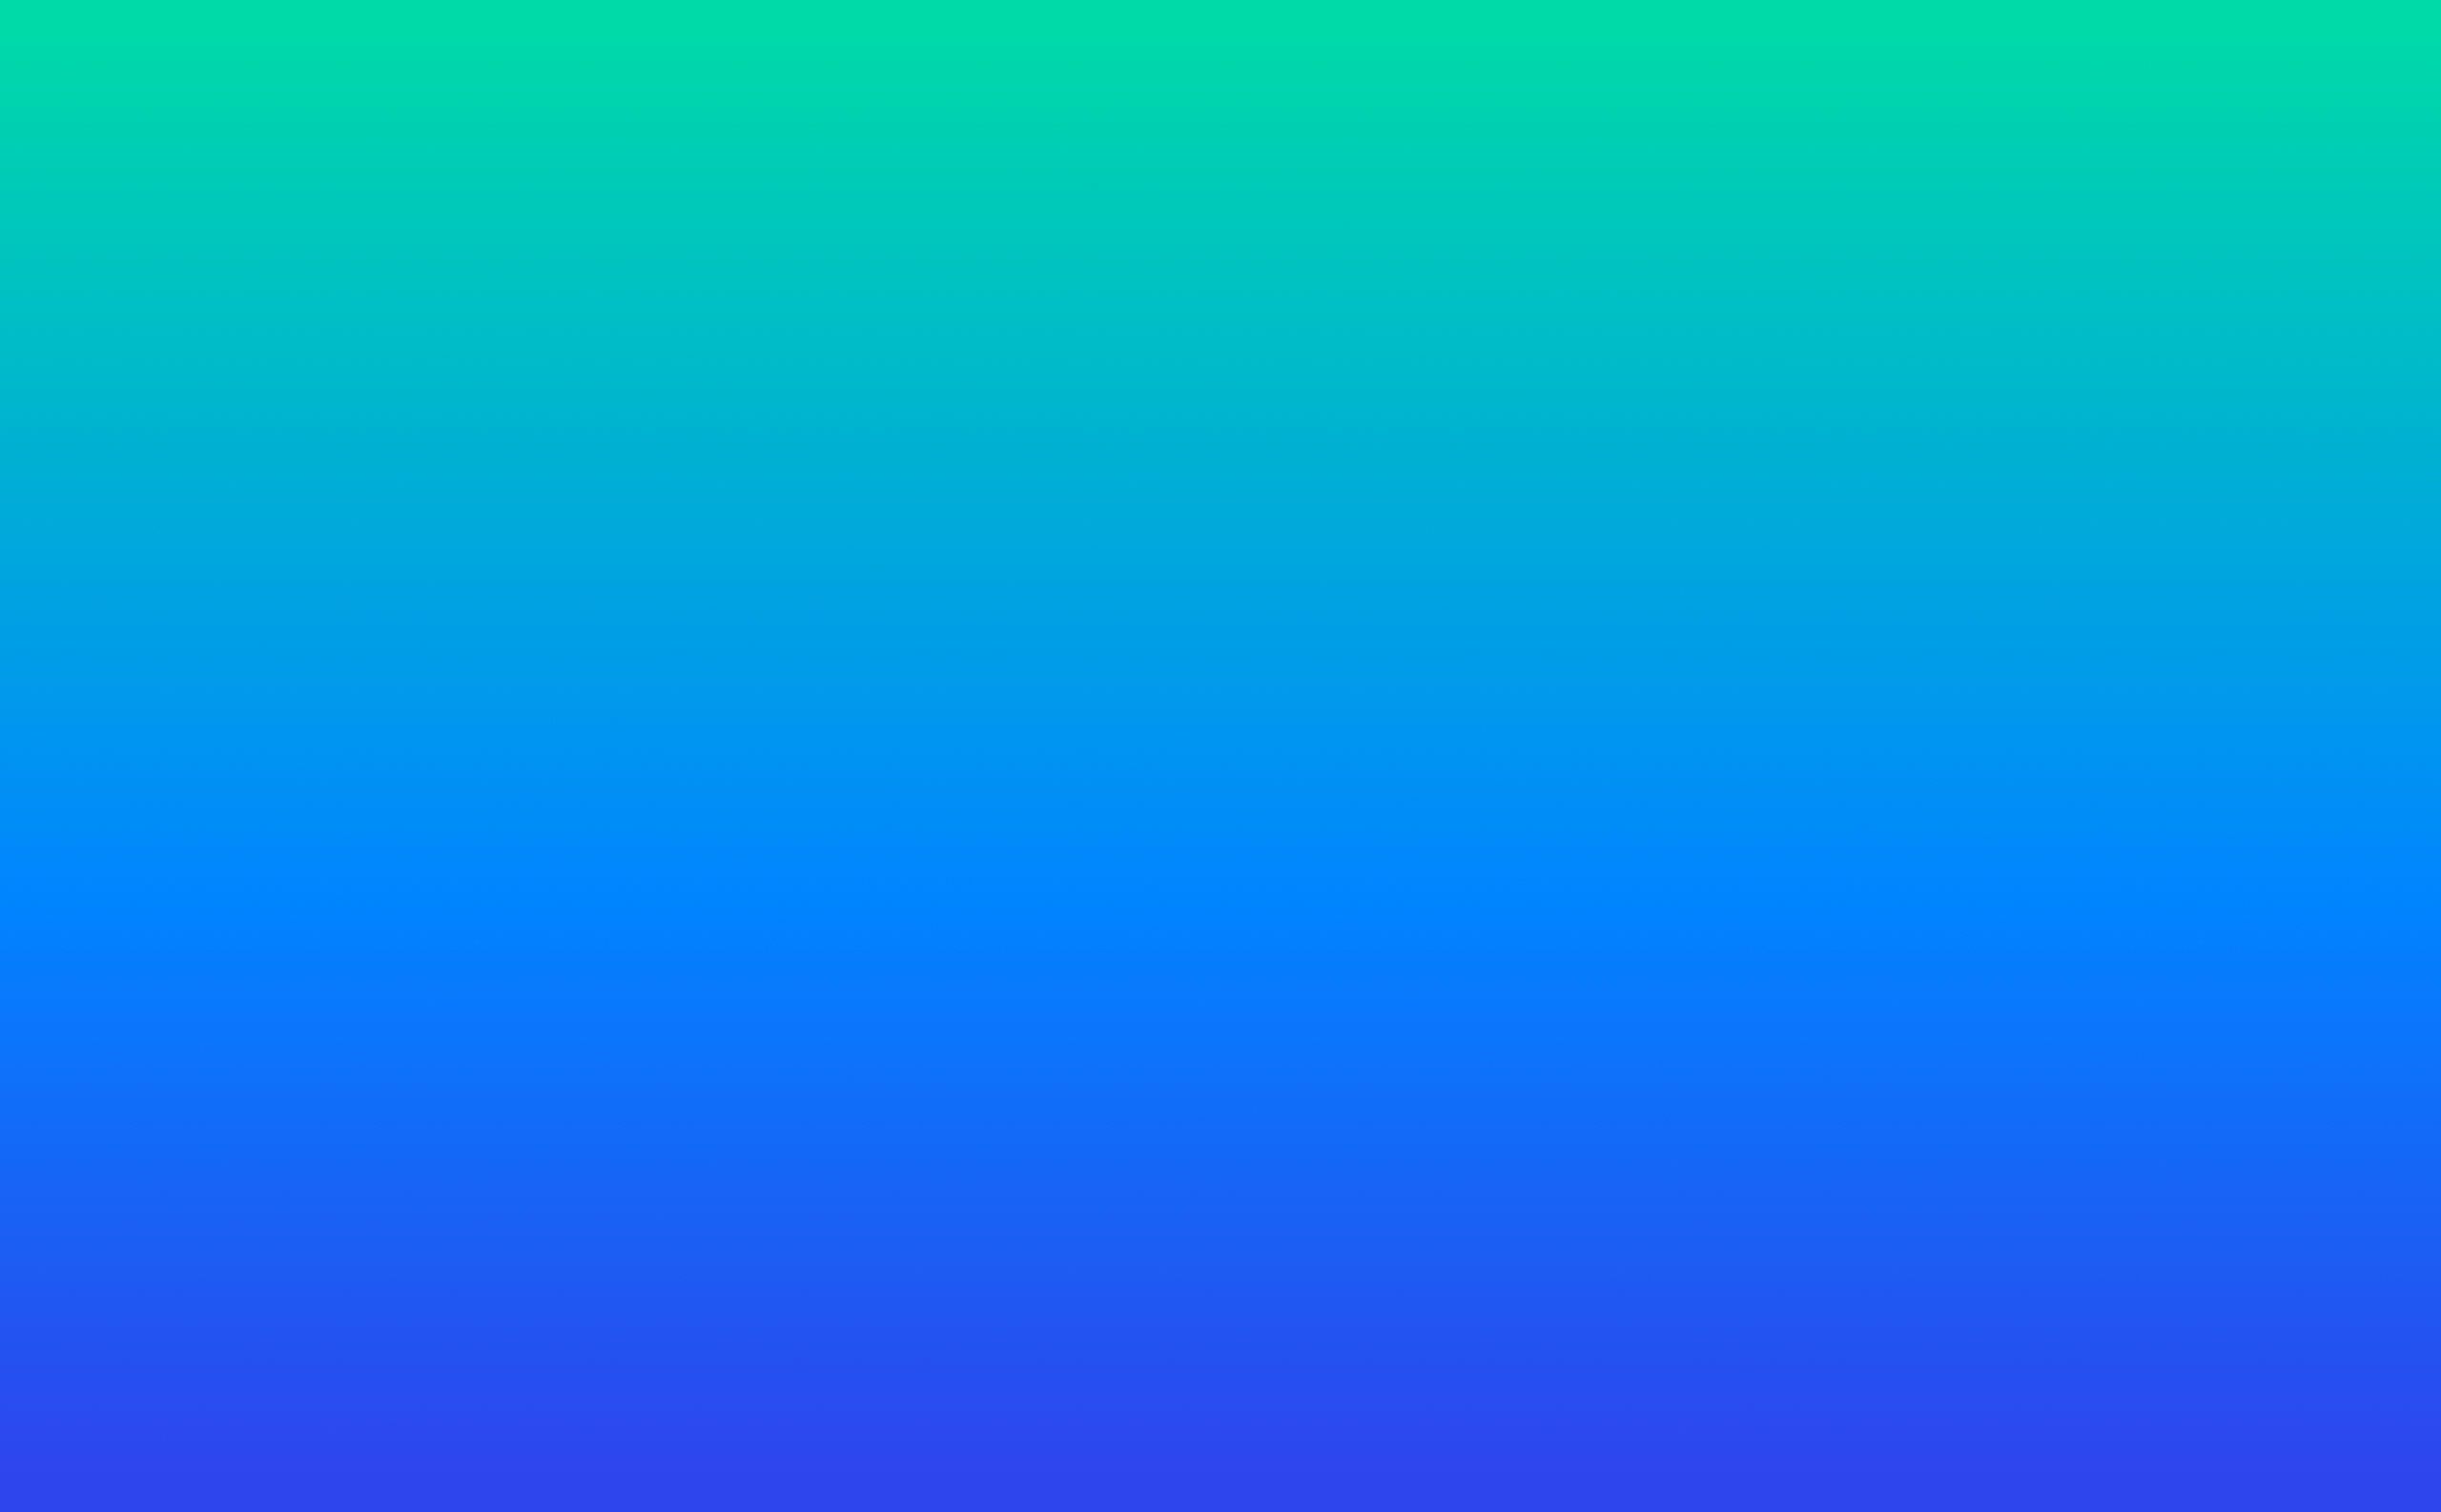 Blue green gradient